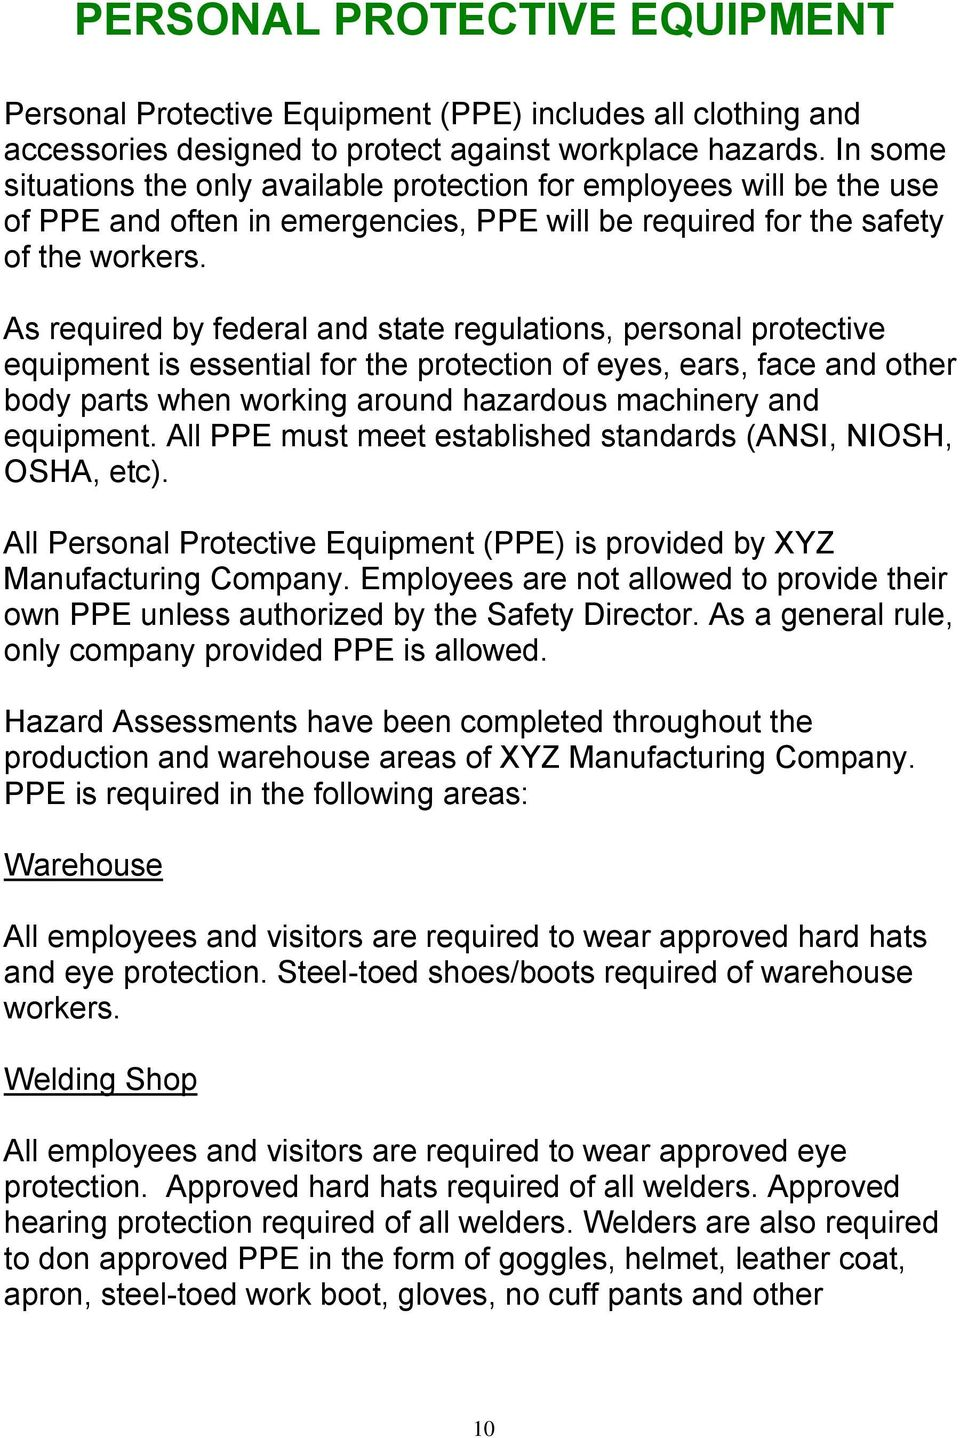 As required by federal and state regulations, personal protective equipment is essential for the protection of eyes, ears, face and other body parts when working around hazardous machinery and